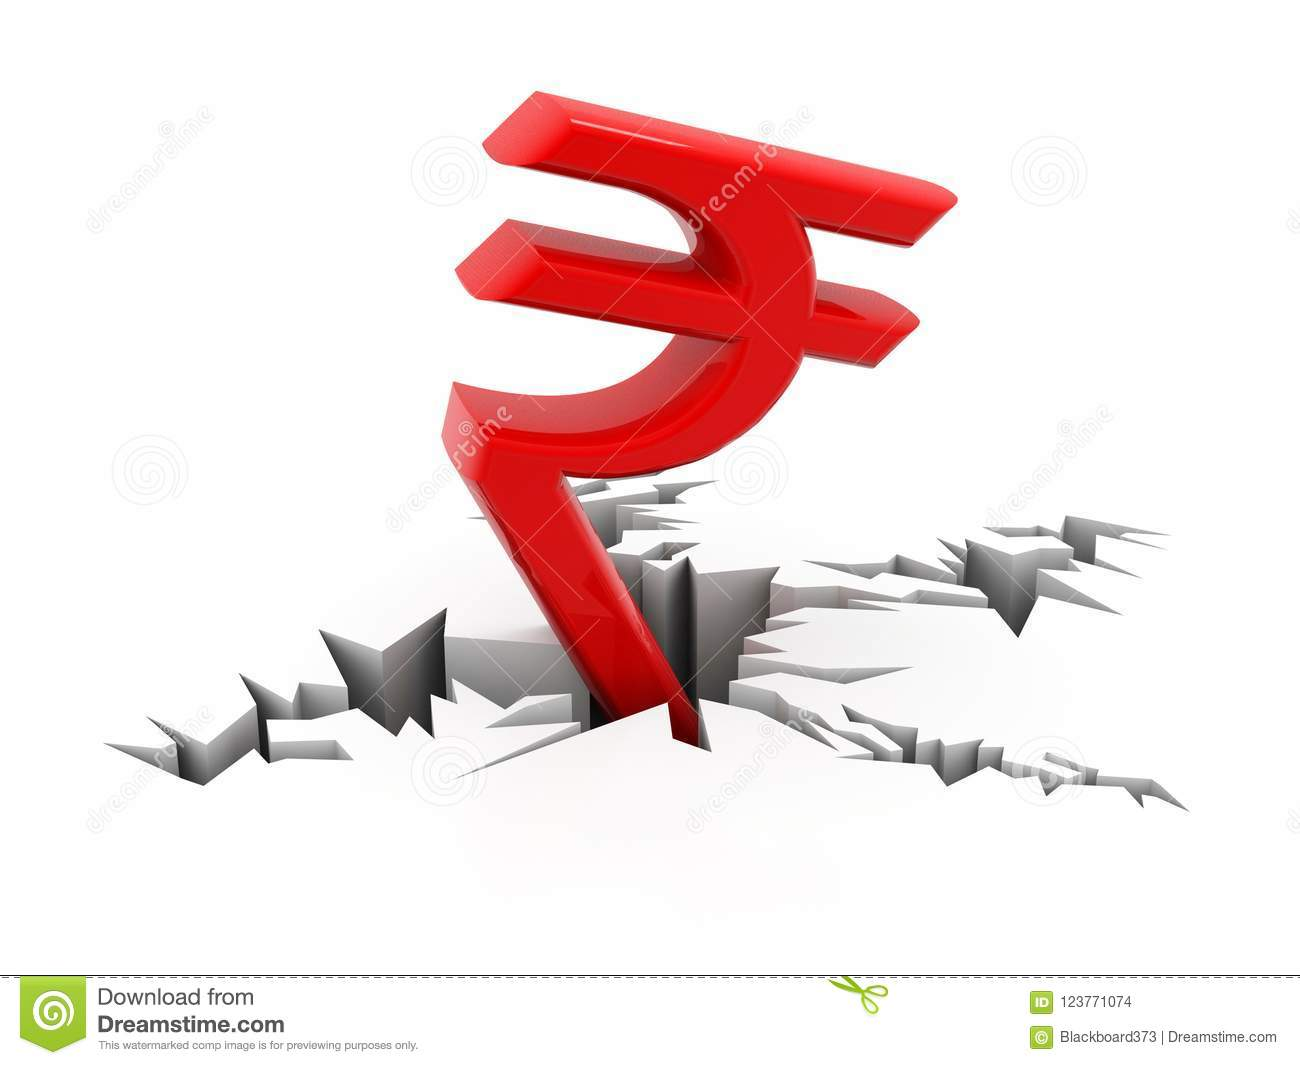 Red Indian Rupee Symbol Down To Ground 3d Rendering Isolated On